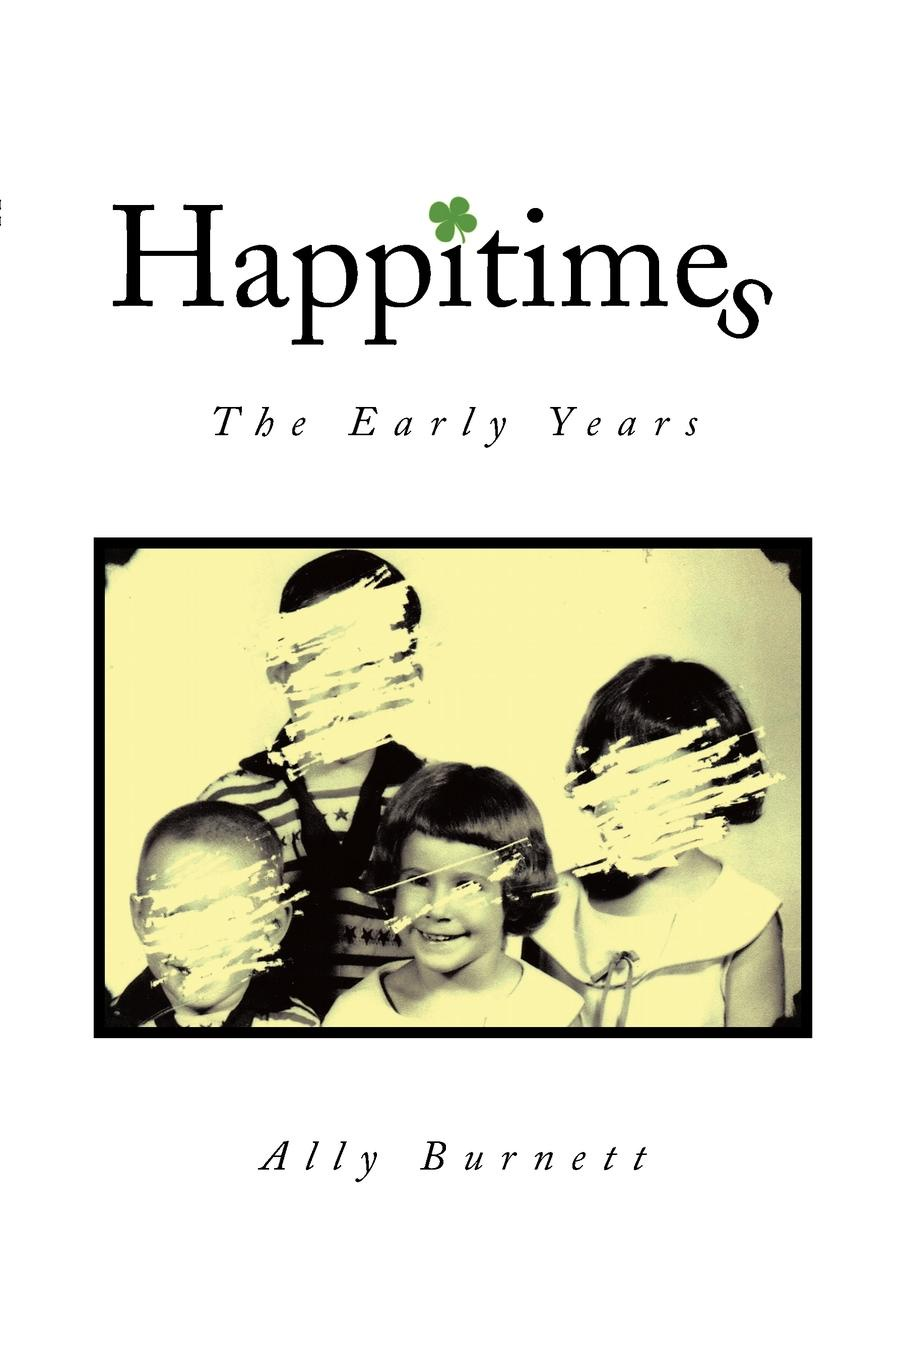 лучшая цена Ally Burnett Happitimes - The Early Years. The Early Years